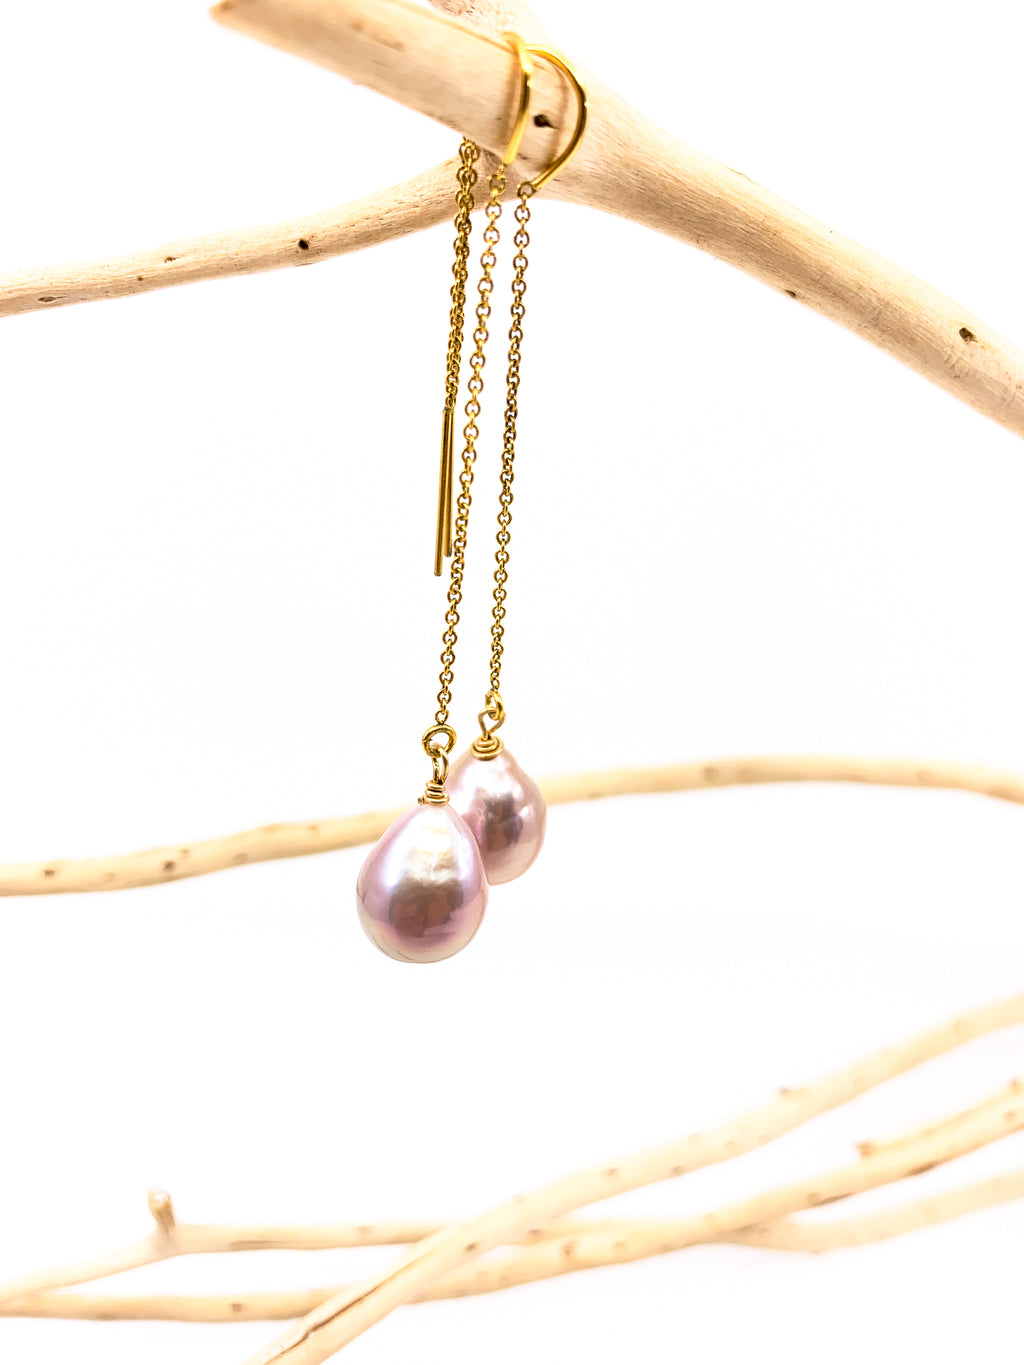 natural 'pink' Edison Baroque pearls gold threader earrings by eve black jewelry made in Hawaii